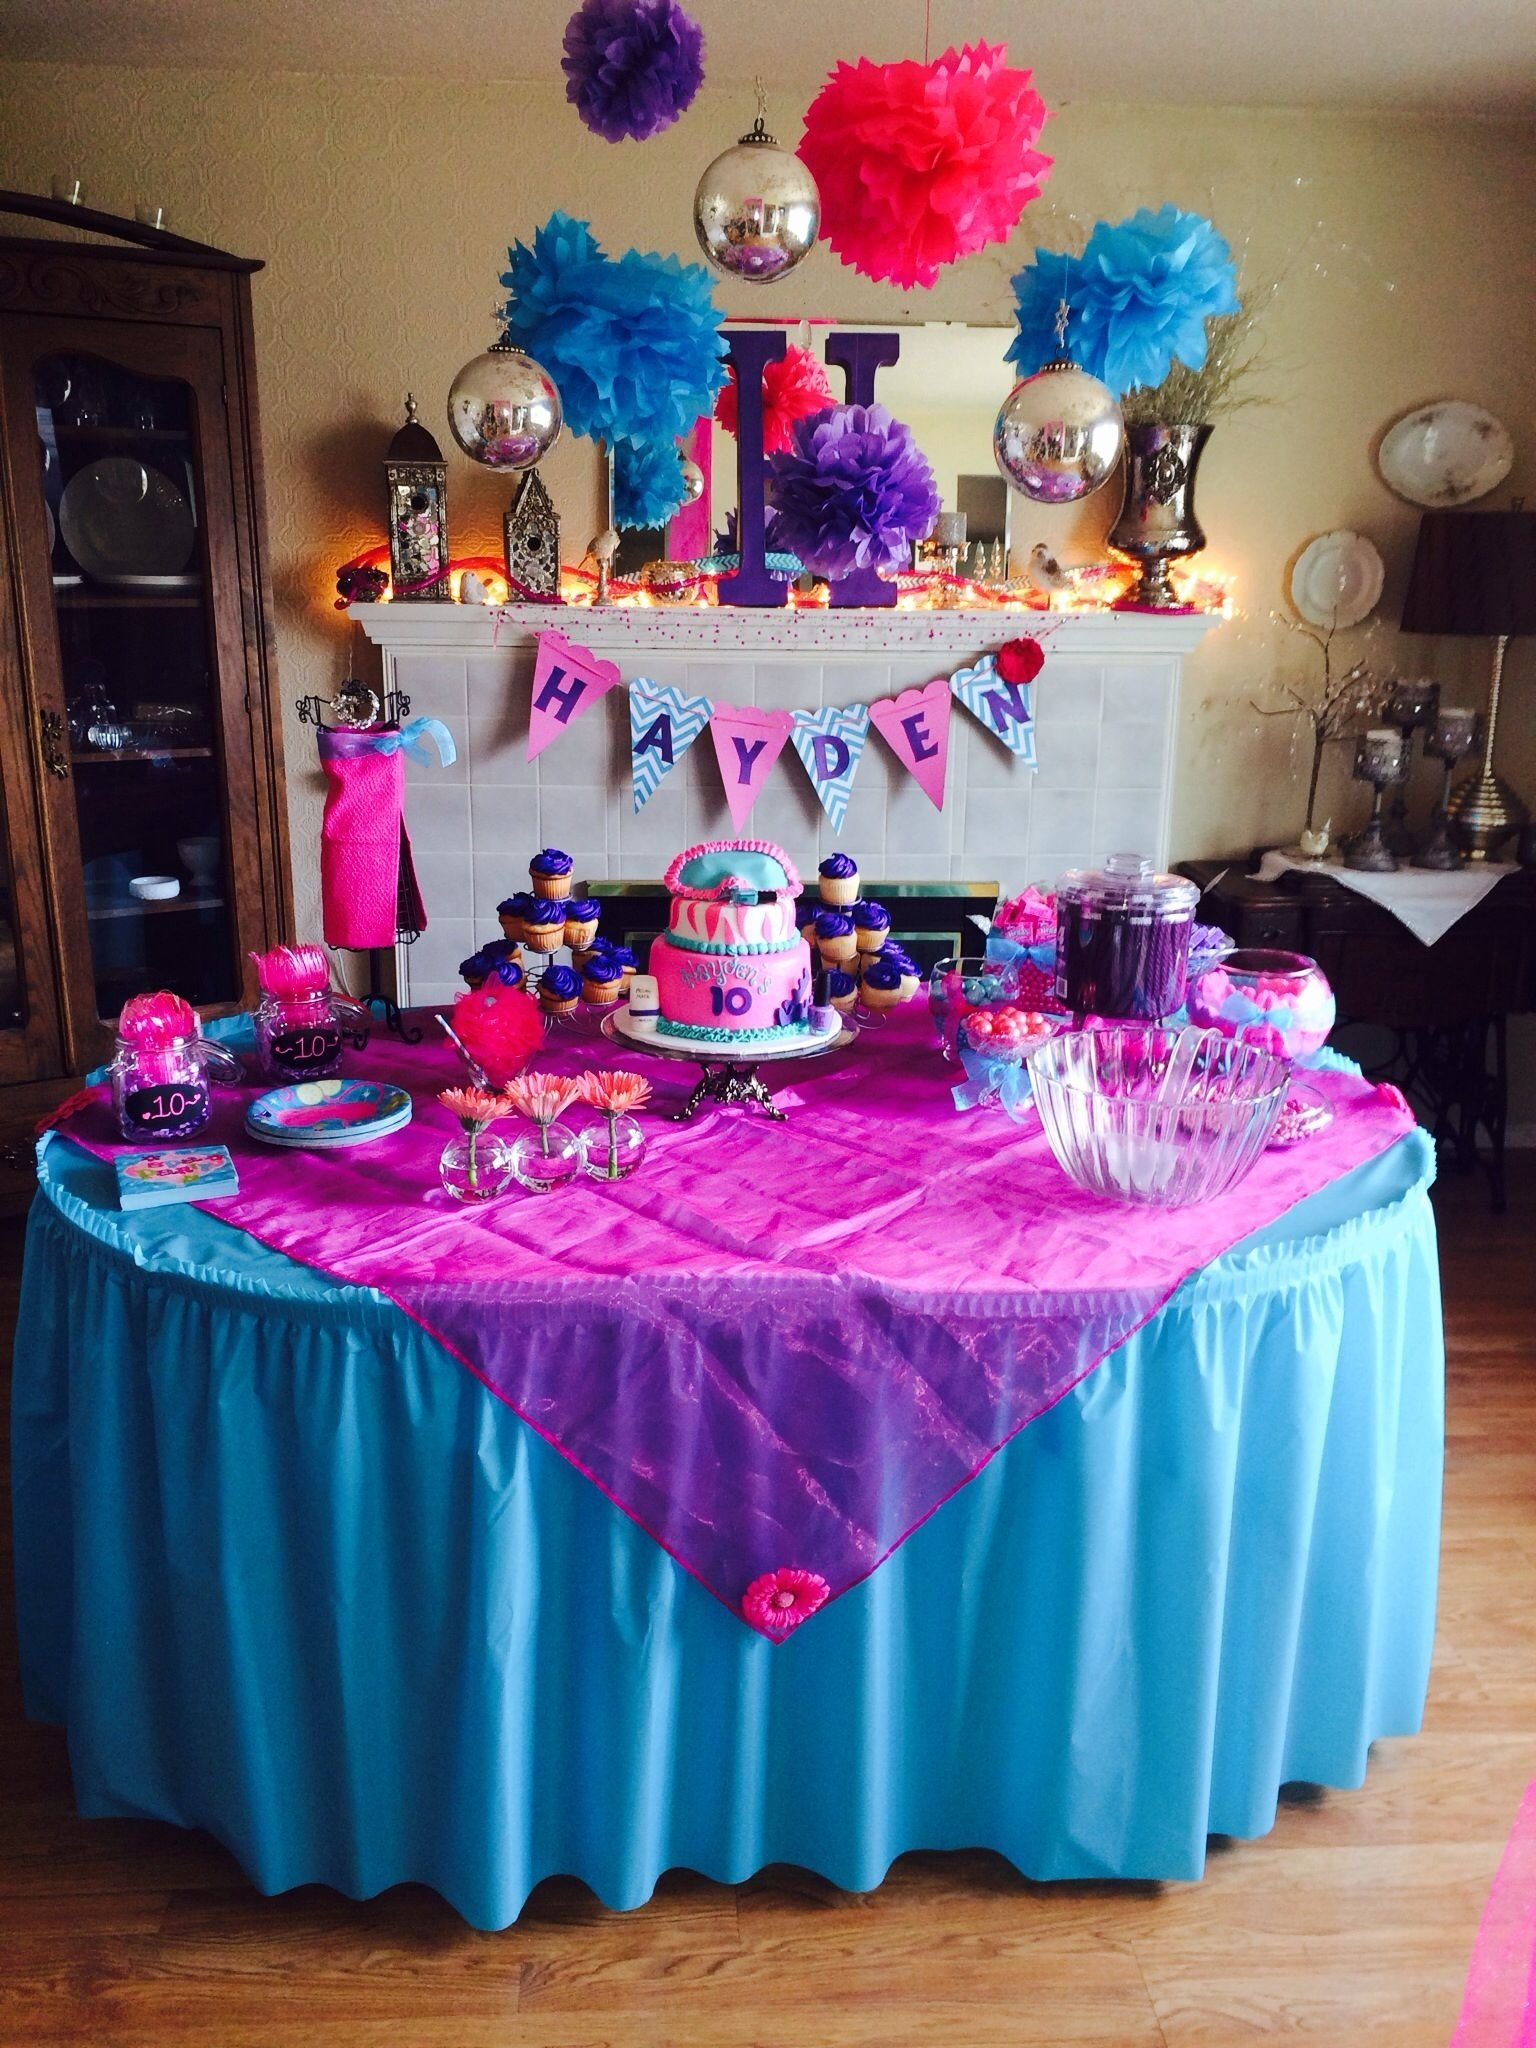 10 Most Popular Birthday Party Ideas For 10 Yr Old Girl pictures birthday party ideas for 10 year girl homemade party decor